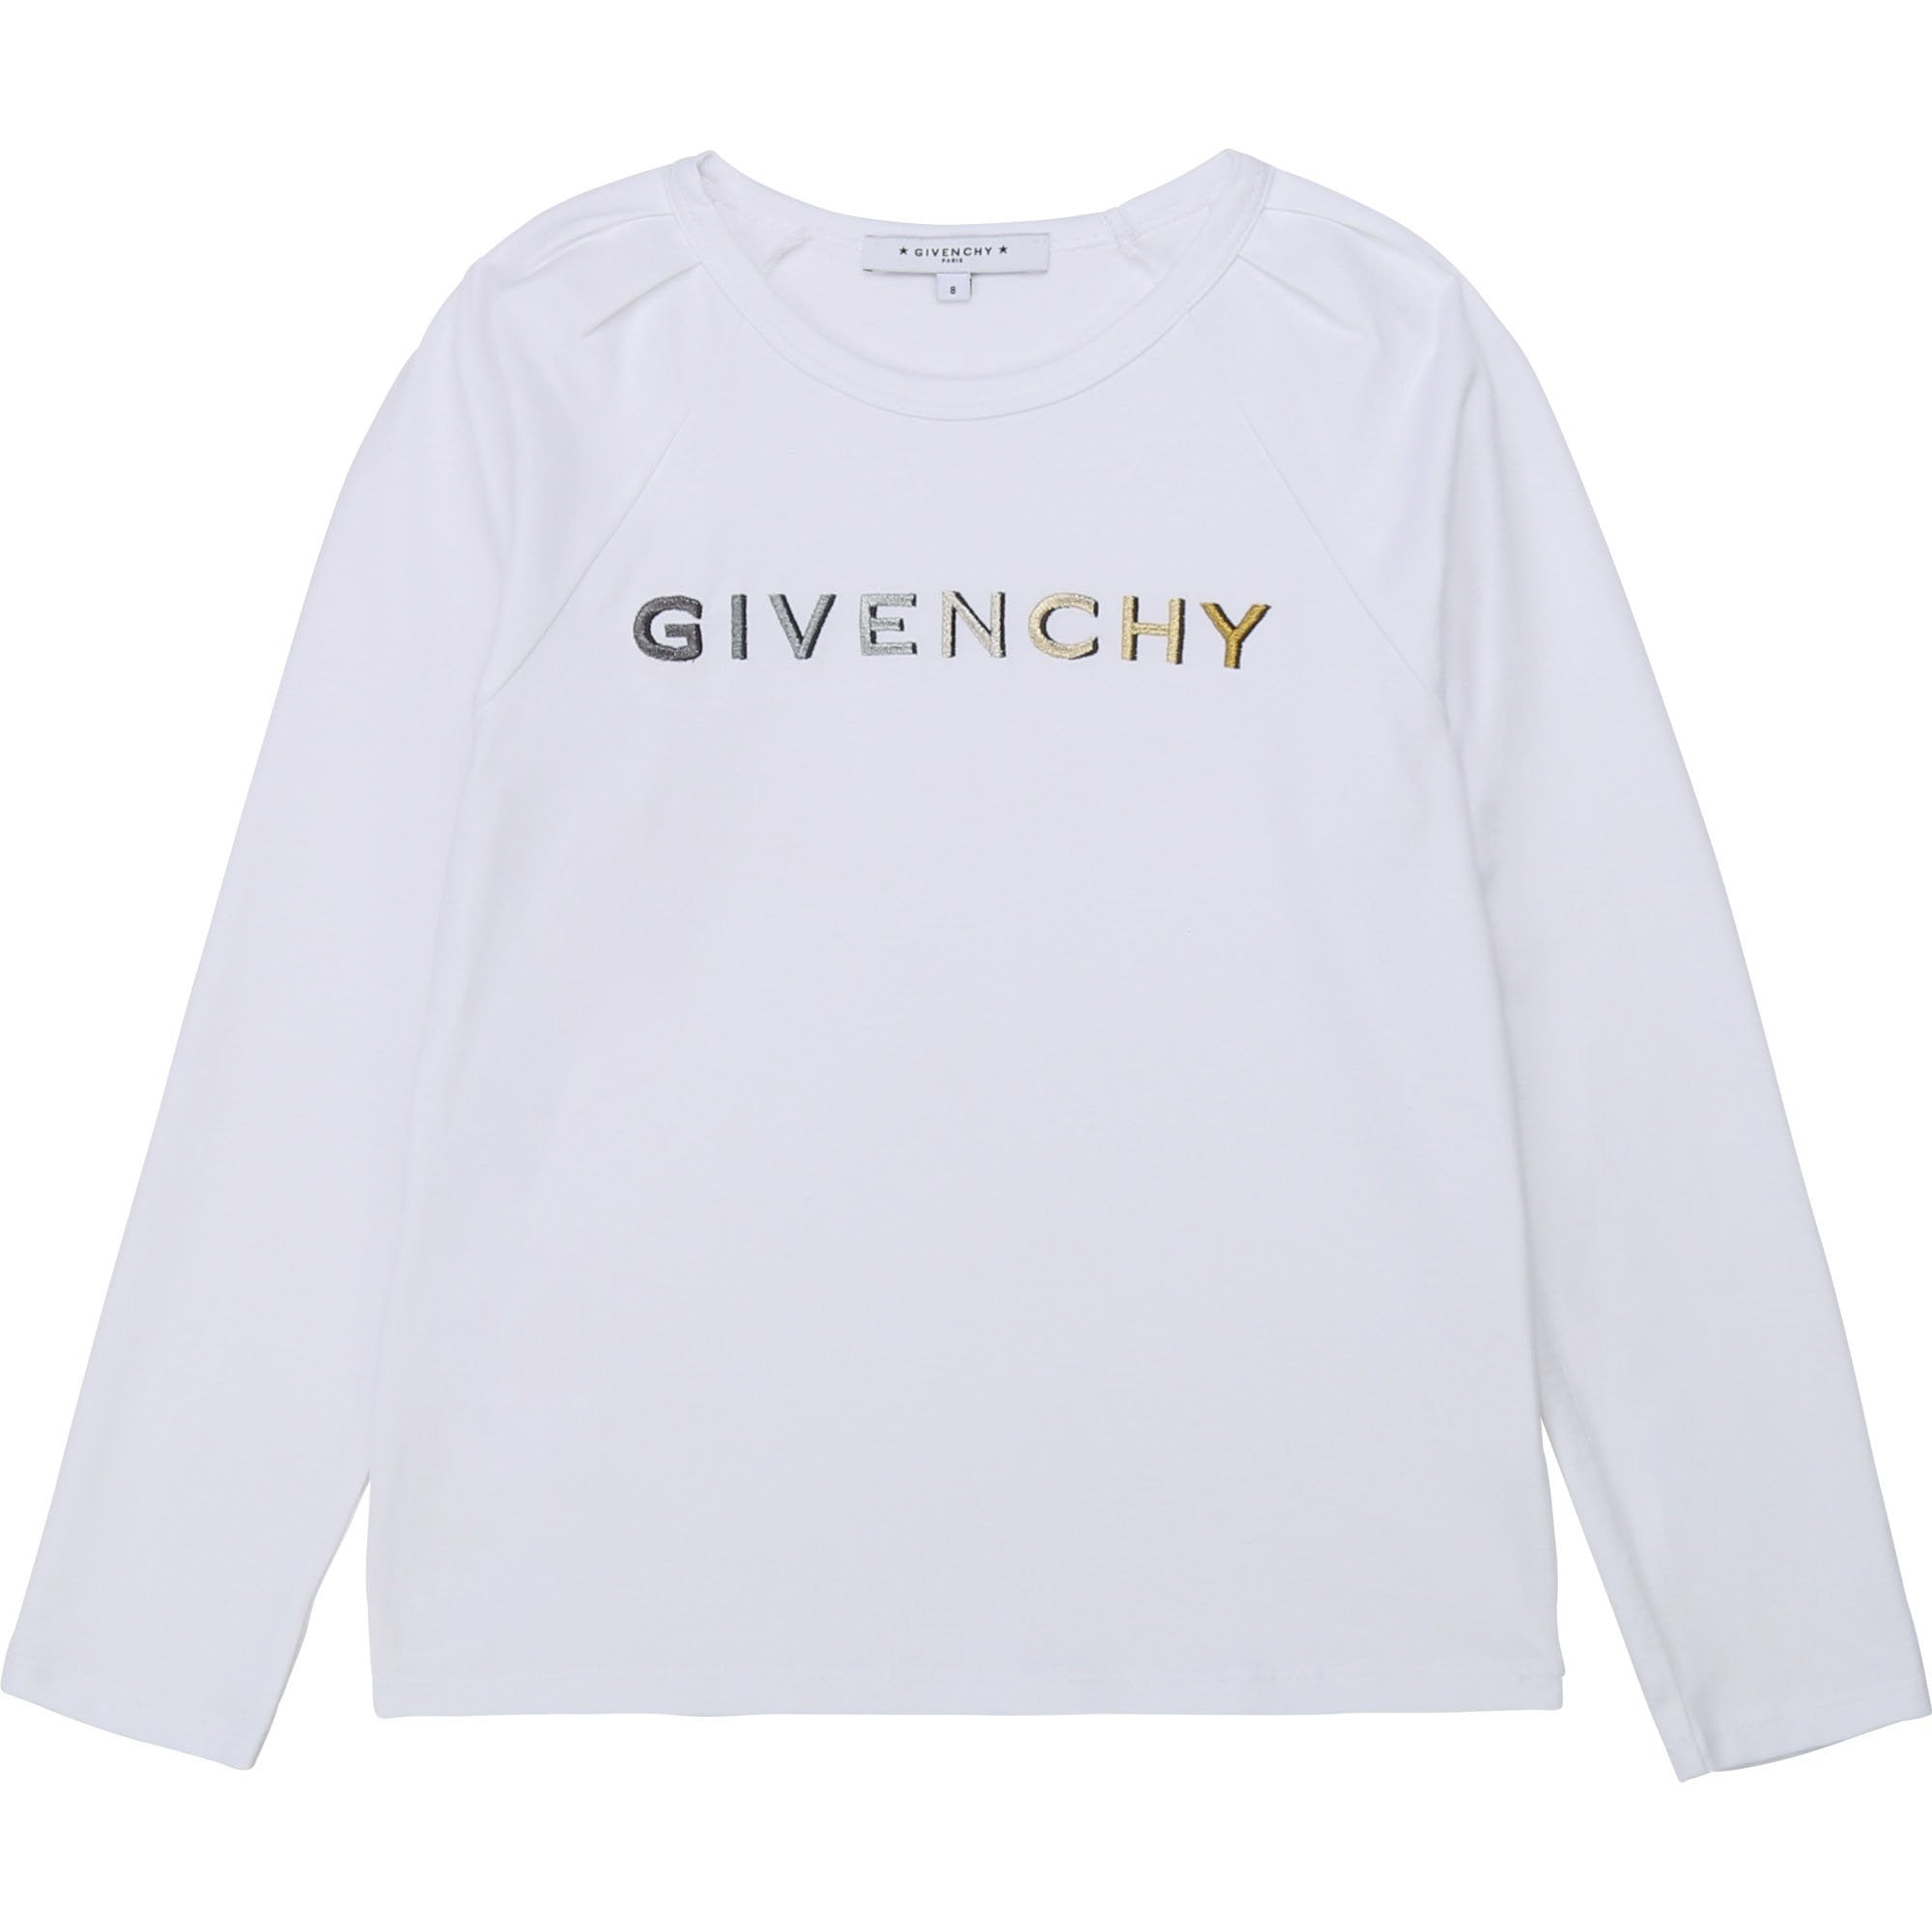 GIVENCHY - white - 04a